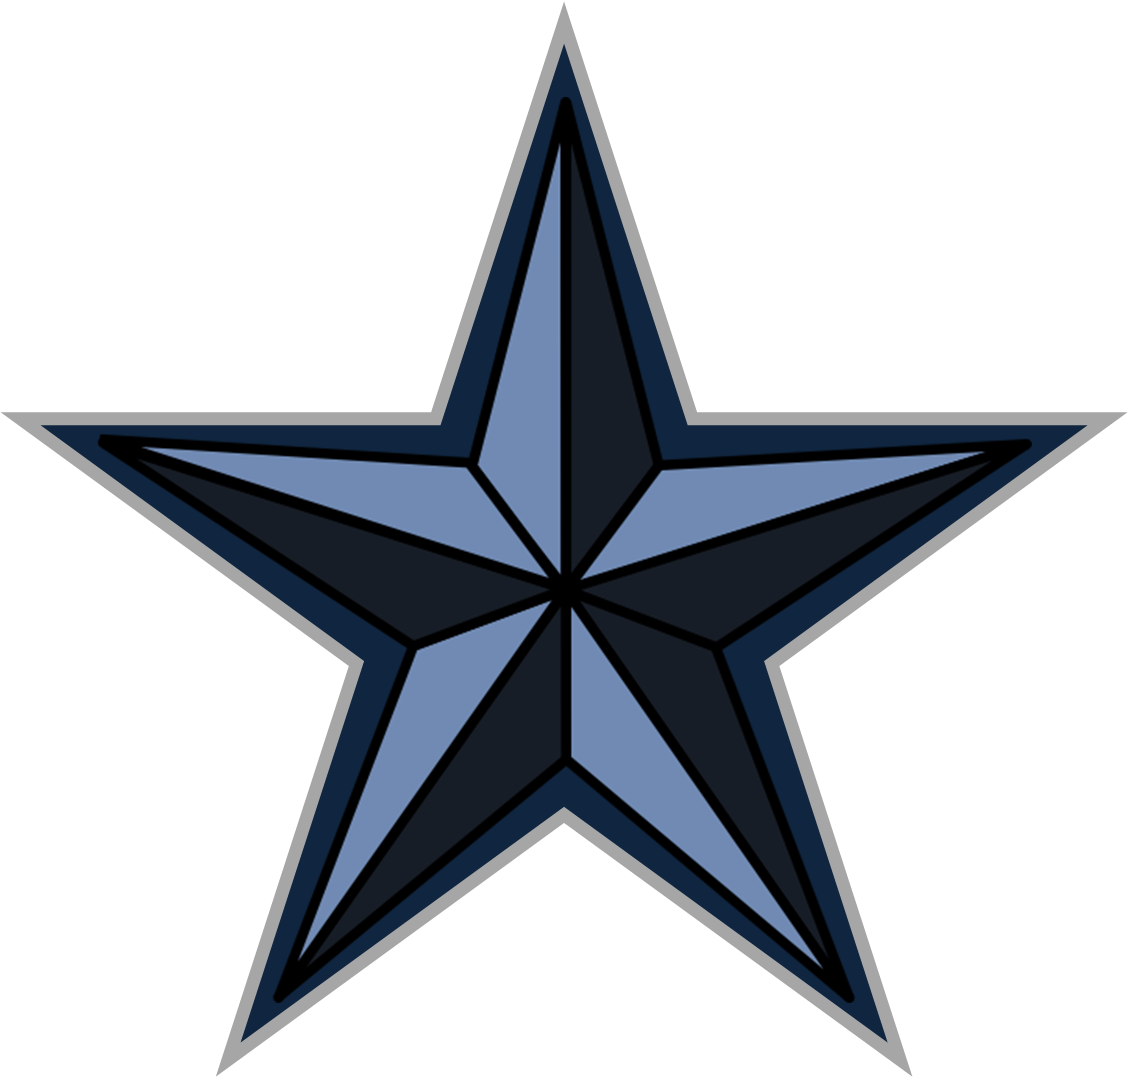 Dallas cowboys star clipart png royalty free download 28+ Collection of Navy Blue Star Clipart | High quality, free ... png royalty free download